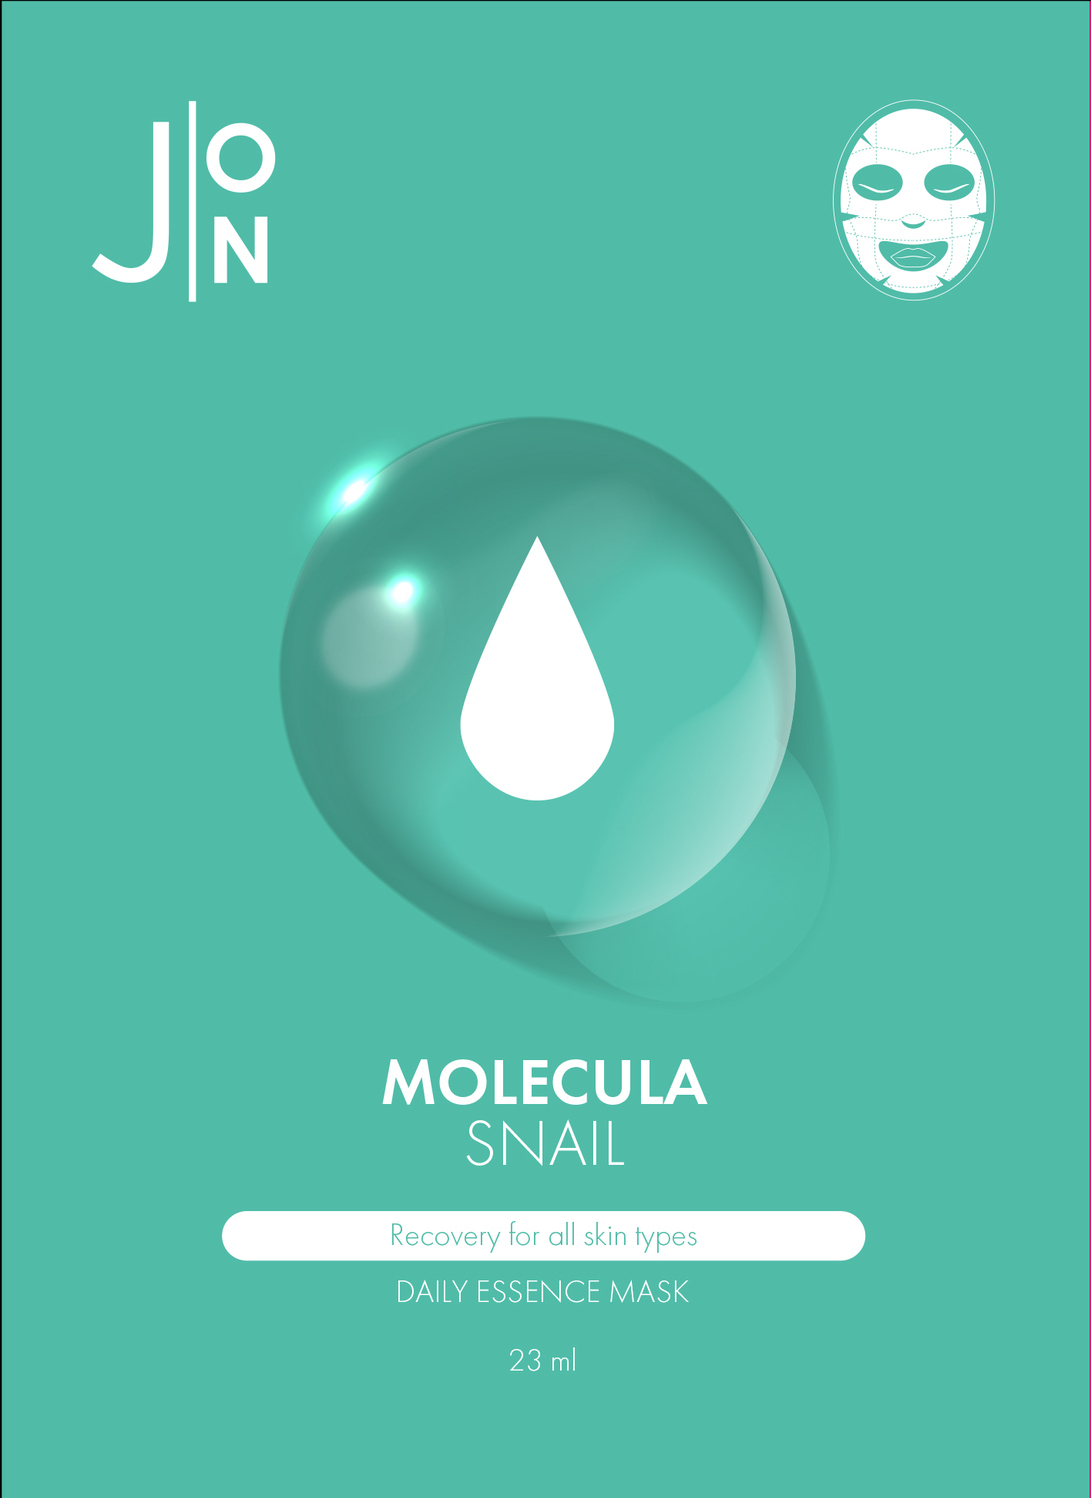 НАБОР/Тканевая маска для лица УЛИТОЧНЫЙ МУЦИН MOLECULA SNAIL DAILY ESSENCE MASK 23 мл Корейская косметика от J:on